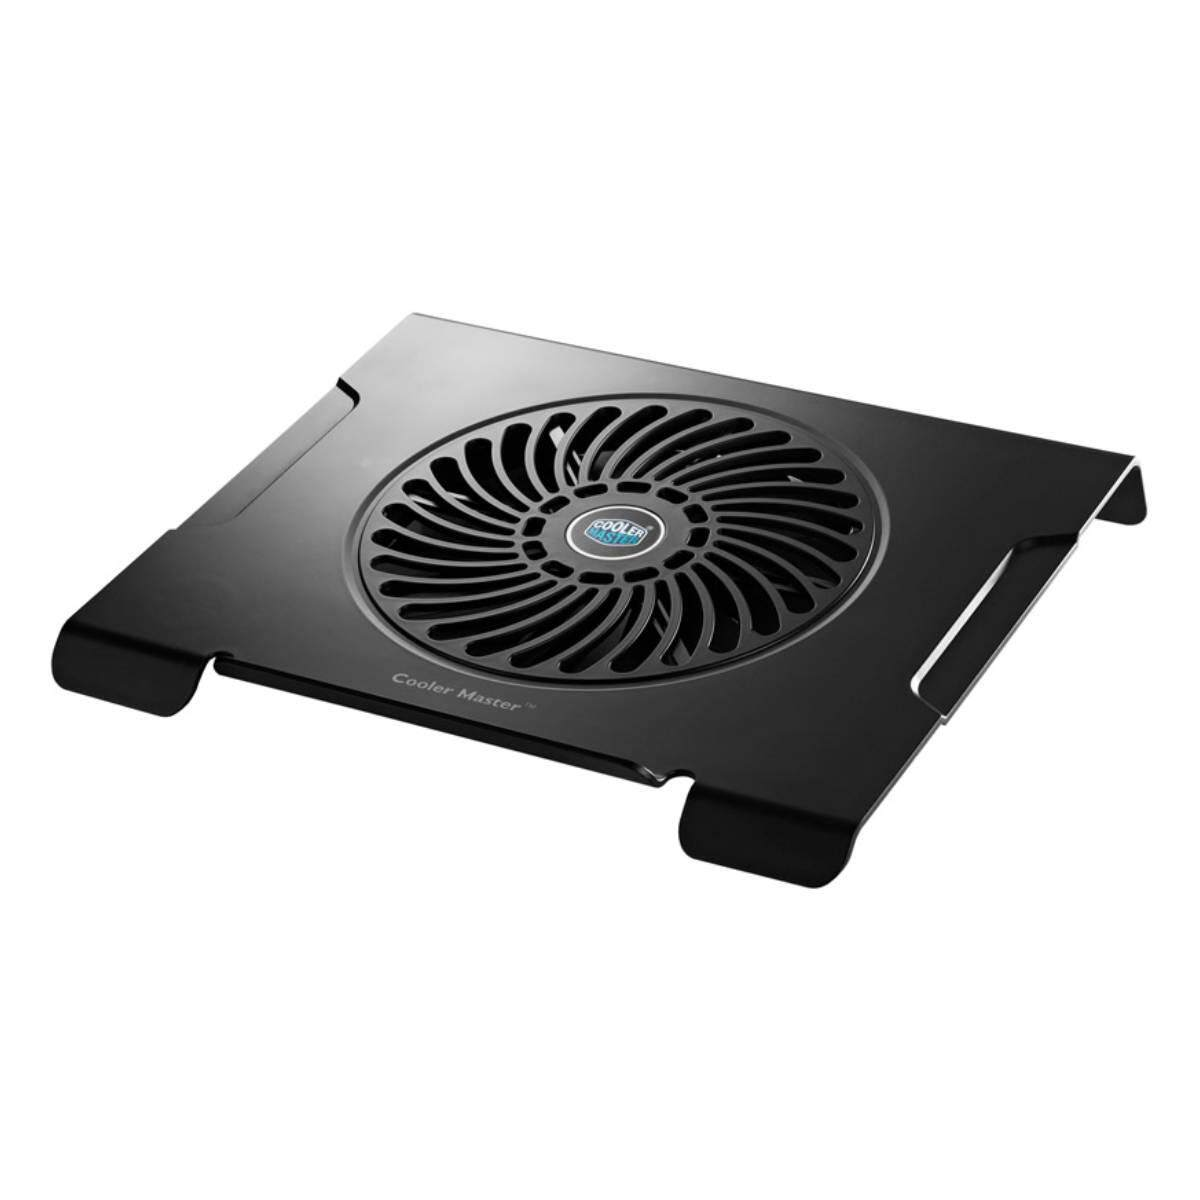 Cooler Master Notepal CMC3 Silent 200mm Fan Ergonomic Notebook Cooler for up to 15